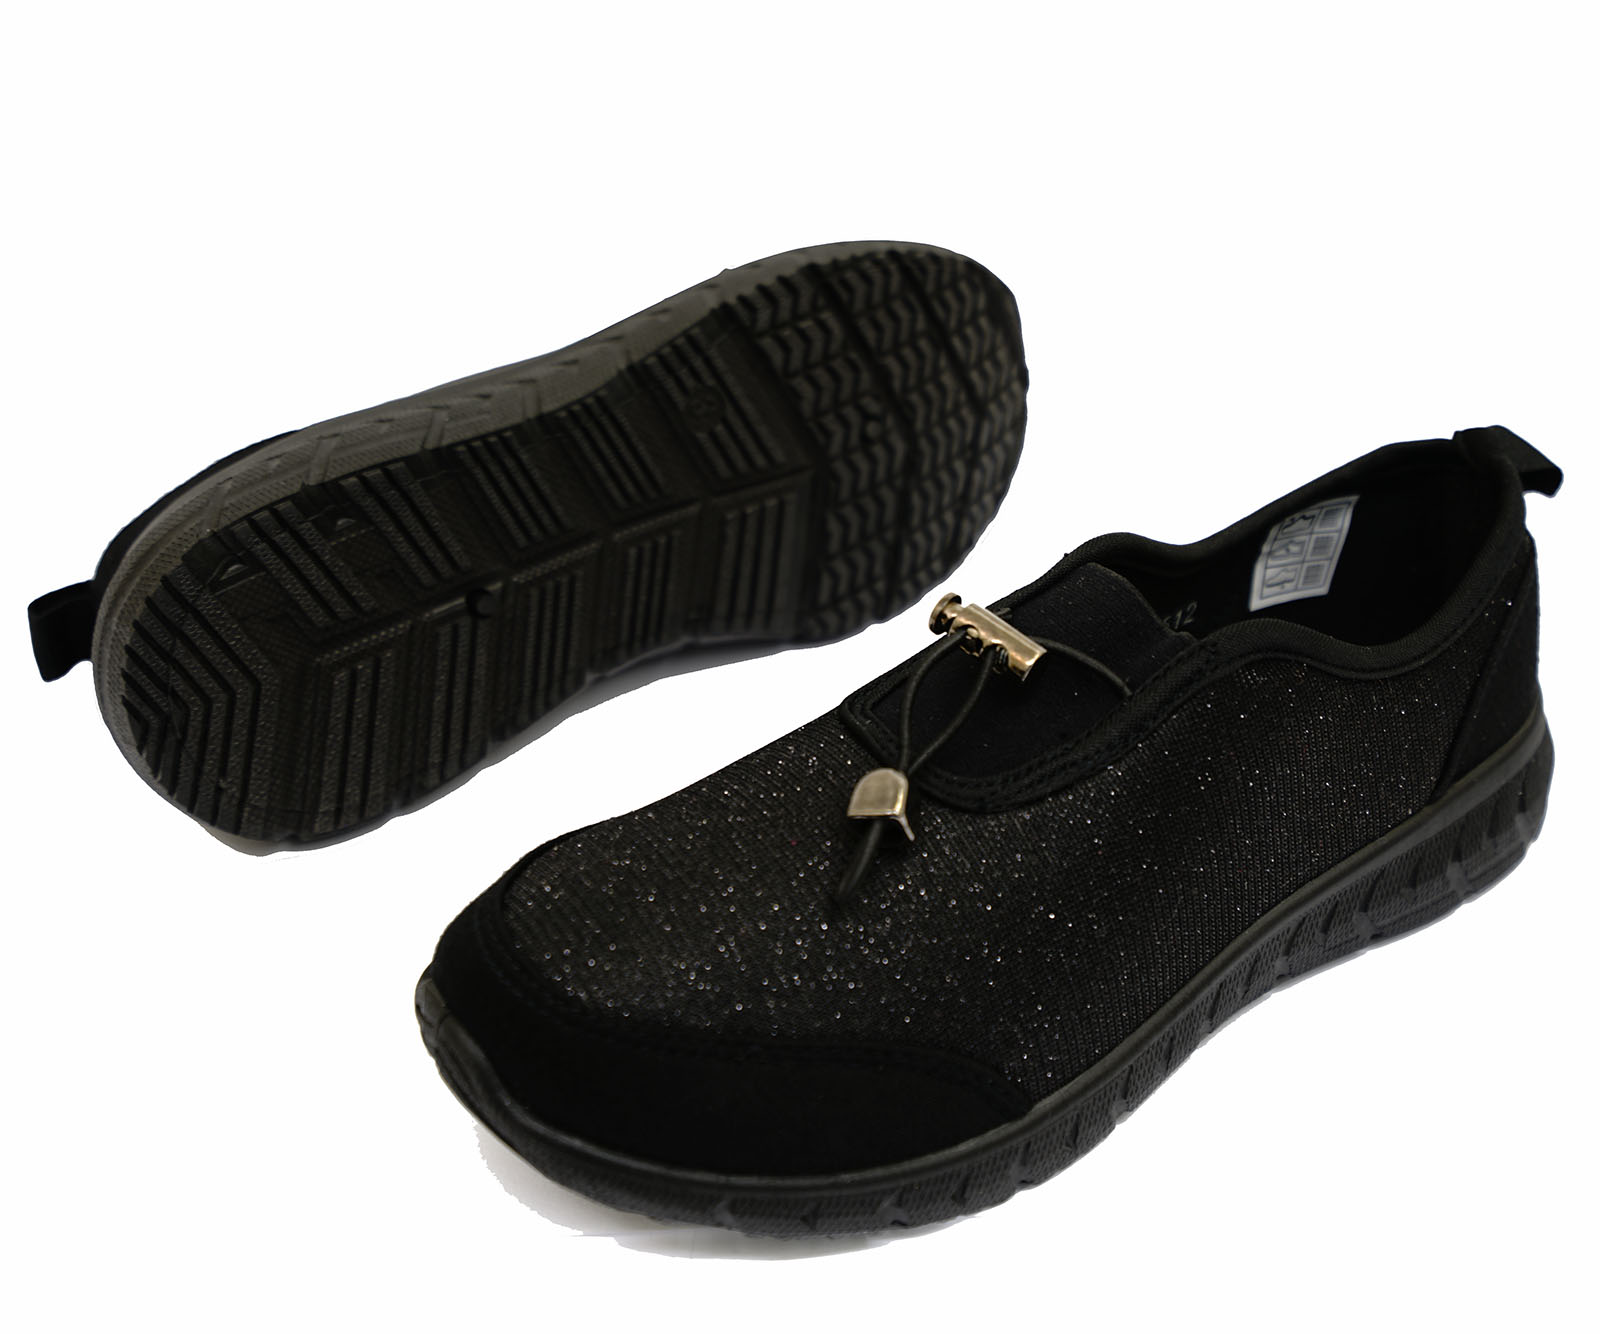 thumbnail 7 - LADIES-BLACK-SLIP-ON-COMFORT-MEMORY-FOAM-TRAINER-PLIMSOLL-CASUAL-PUMPS-SHOES-3-9